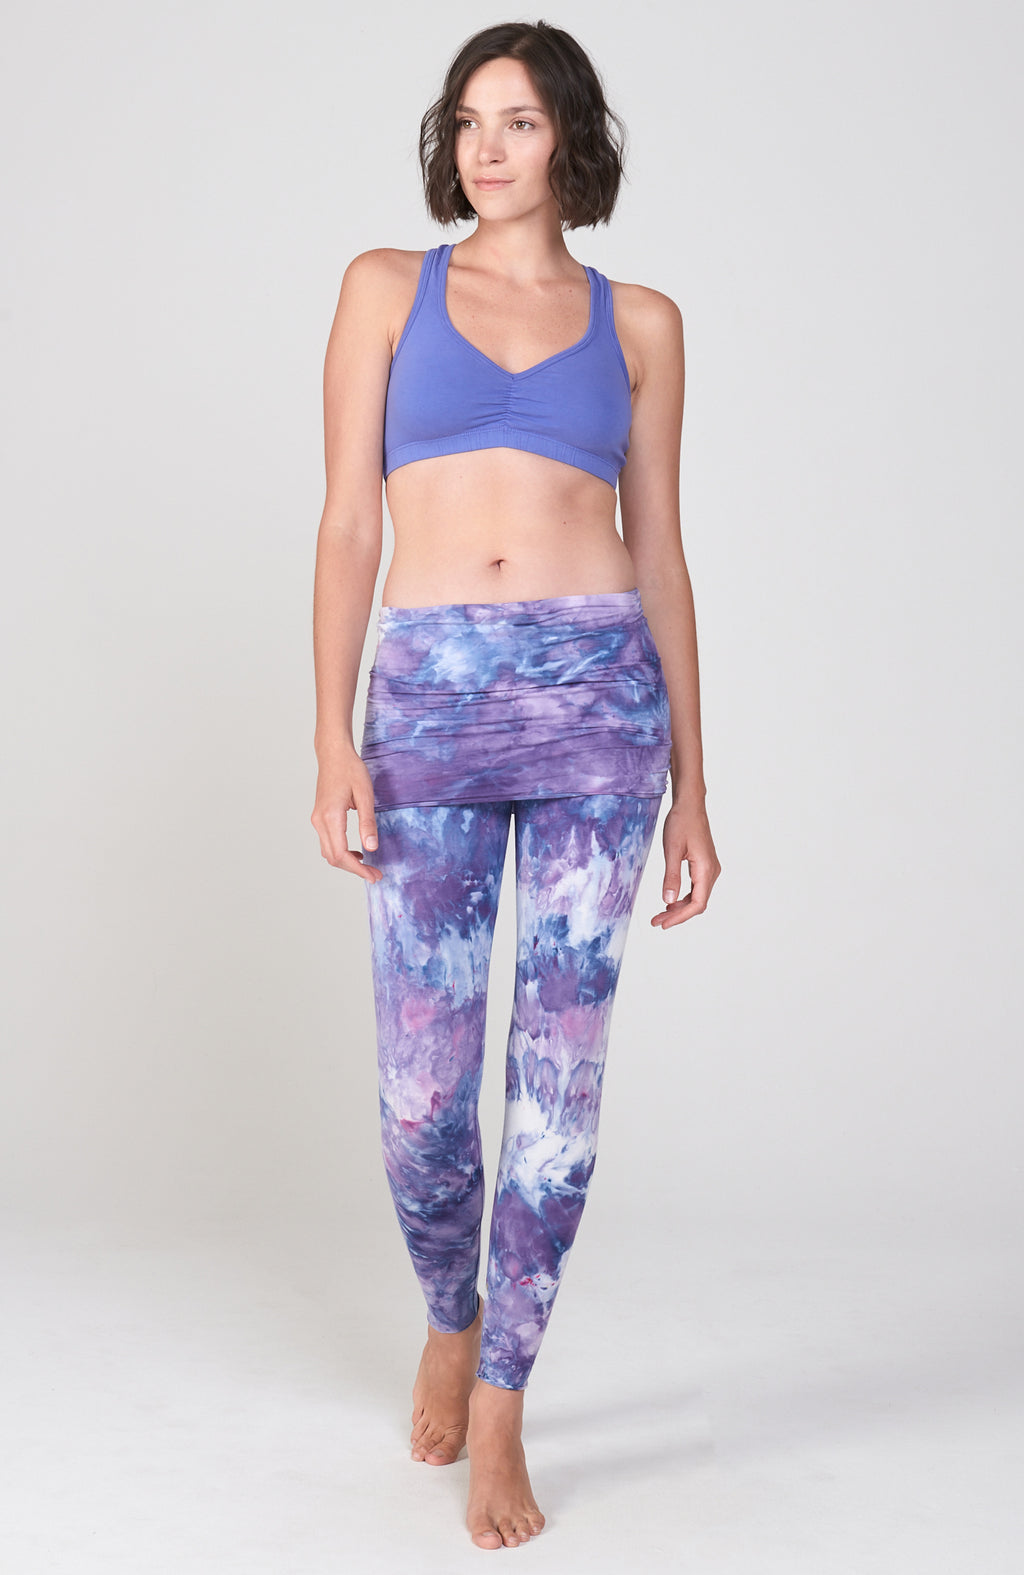 Nomad Legging in Midnight Sky